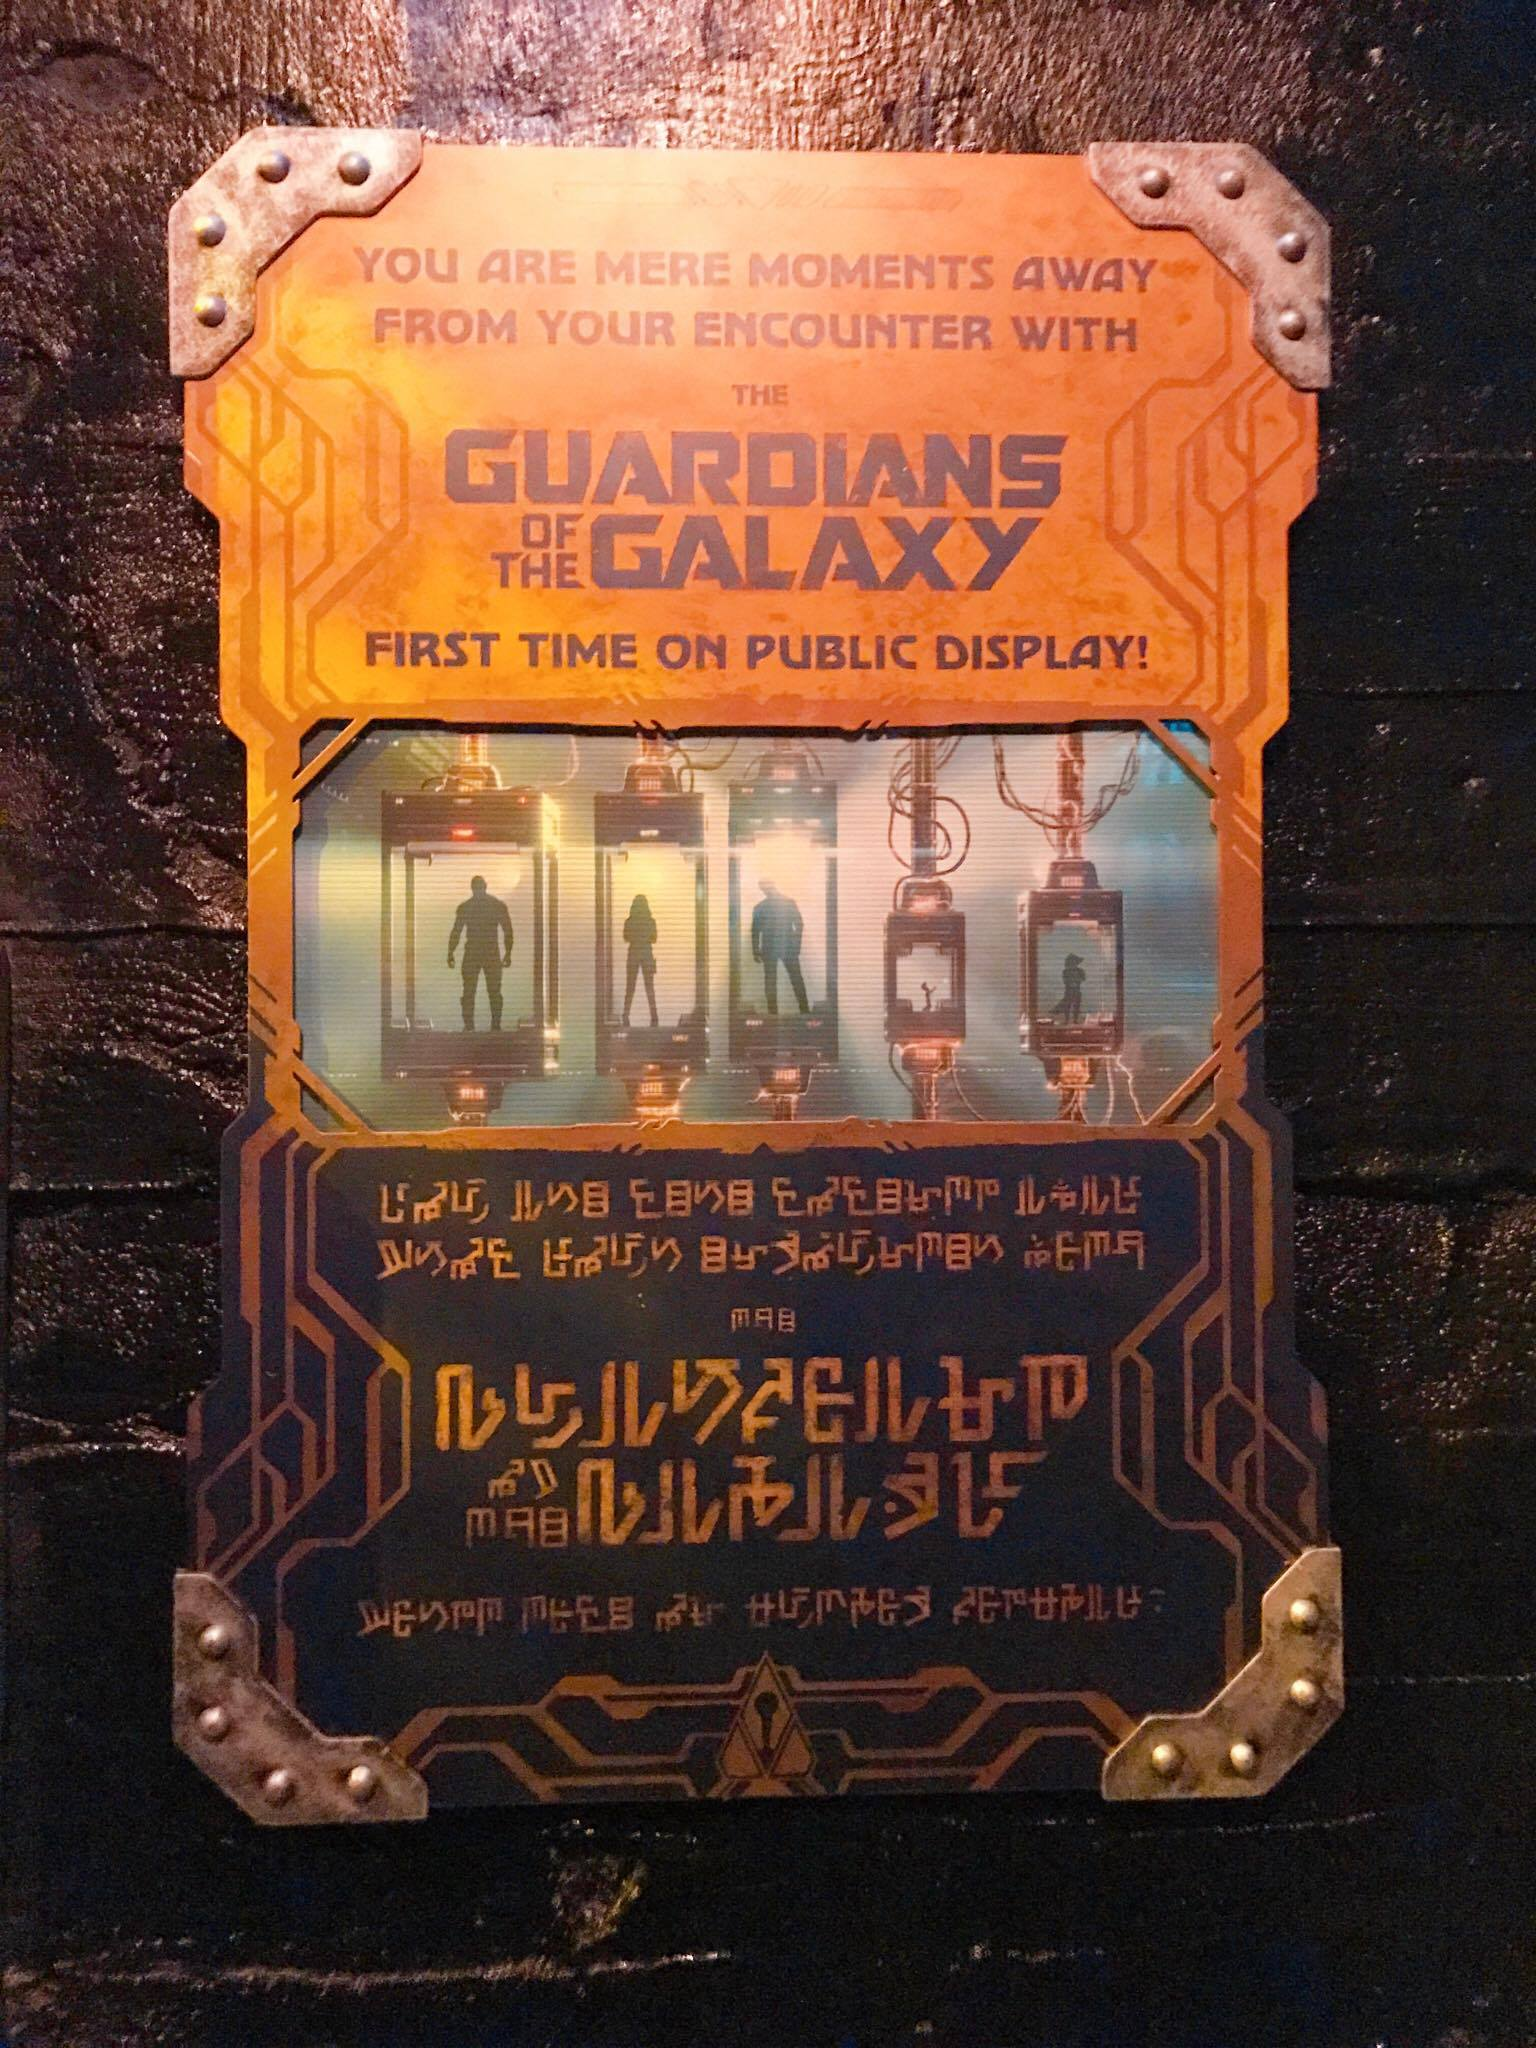 The new Guardians of the Galaxy: Mission Breakout! is a MUST do the next time you visit Disney's California Adventure park!